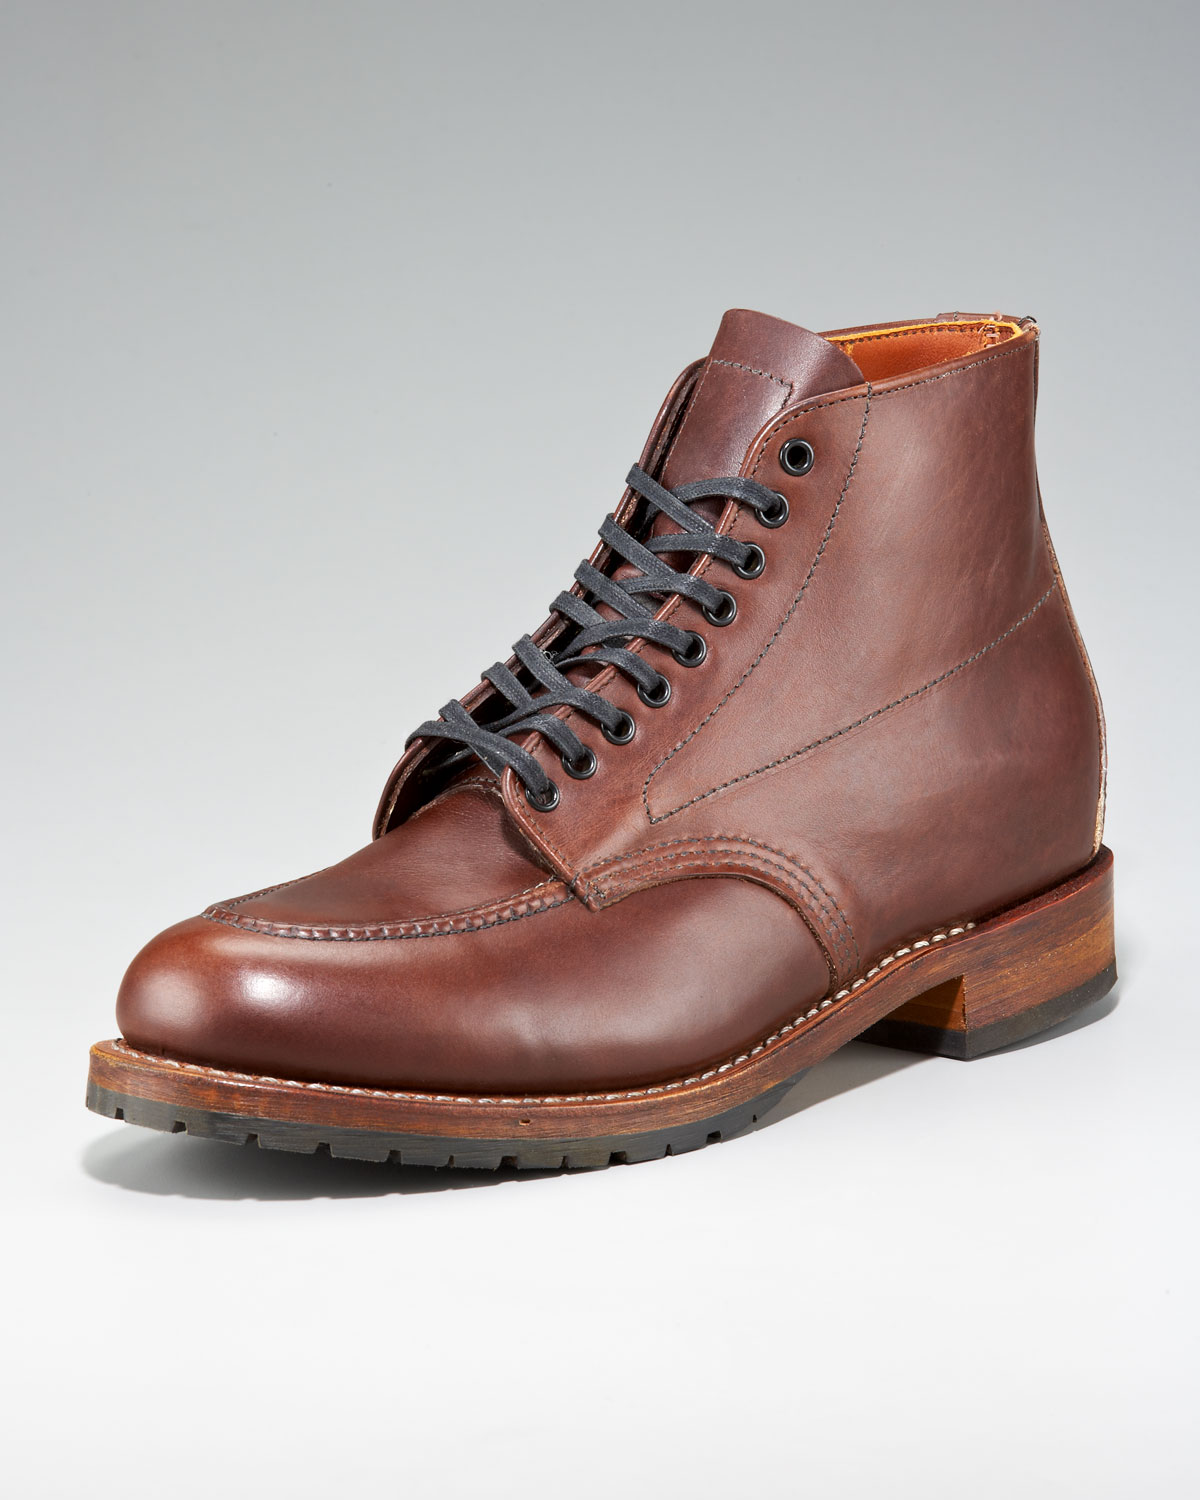 Red Wing Boots For Sale w437uot6